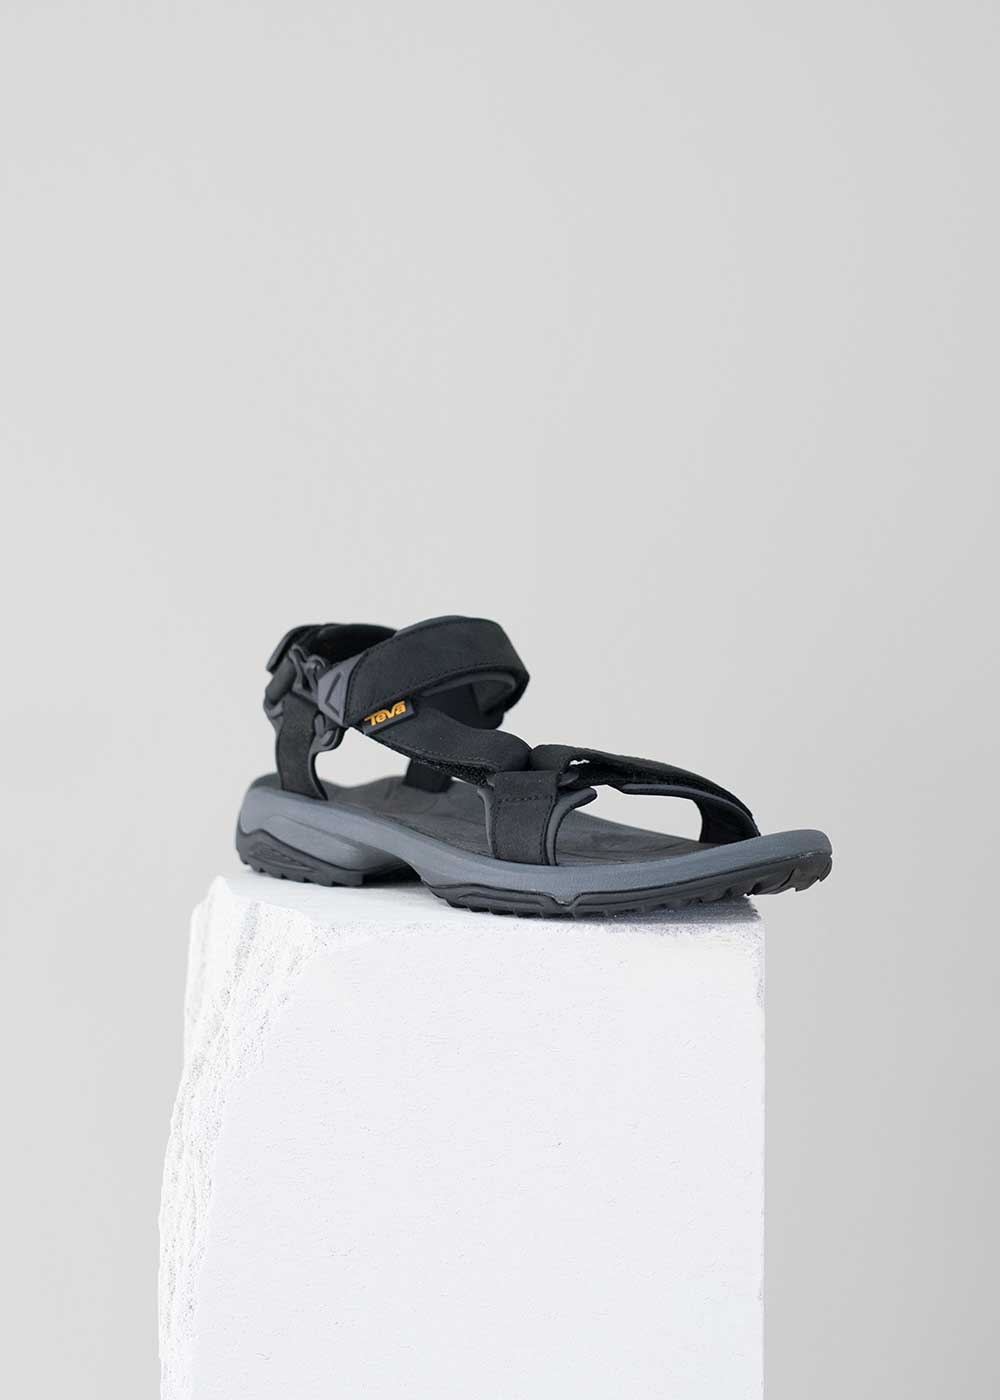 Teva - Terra Fi Lite Leather - Herre sandal - Sort (4486060048466)